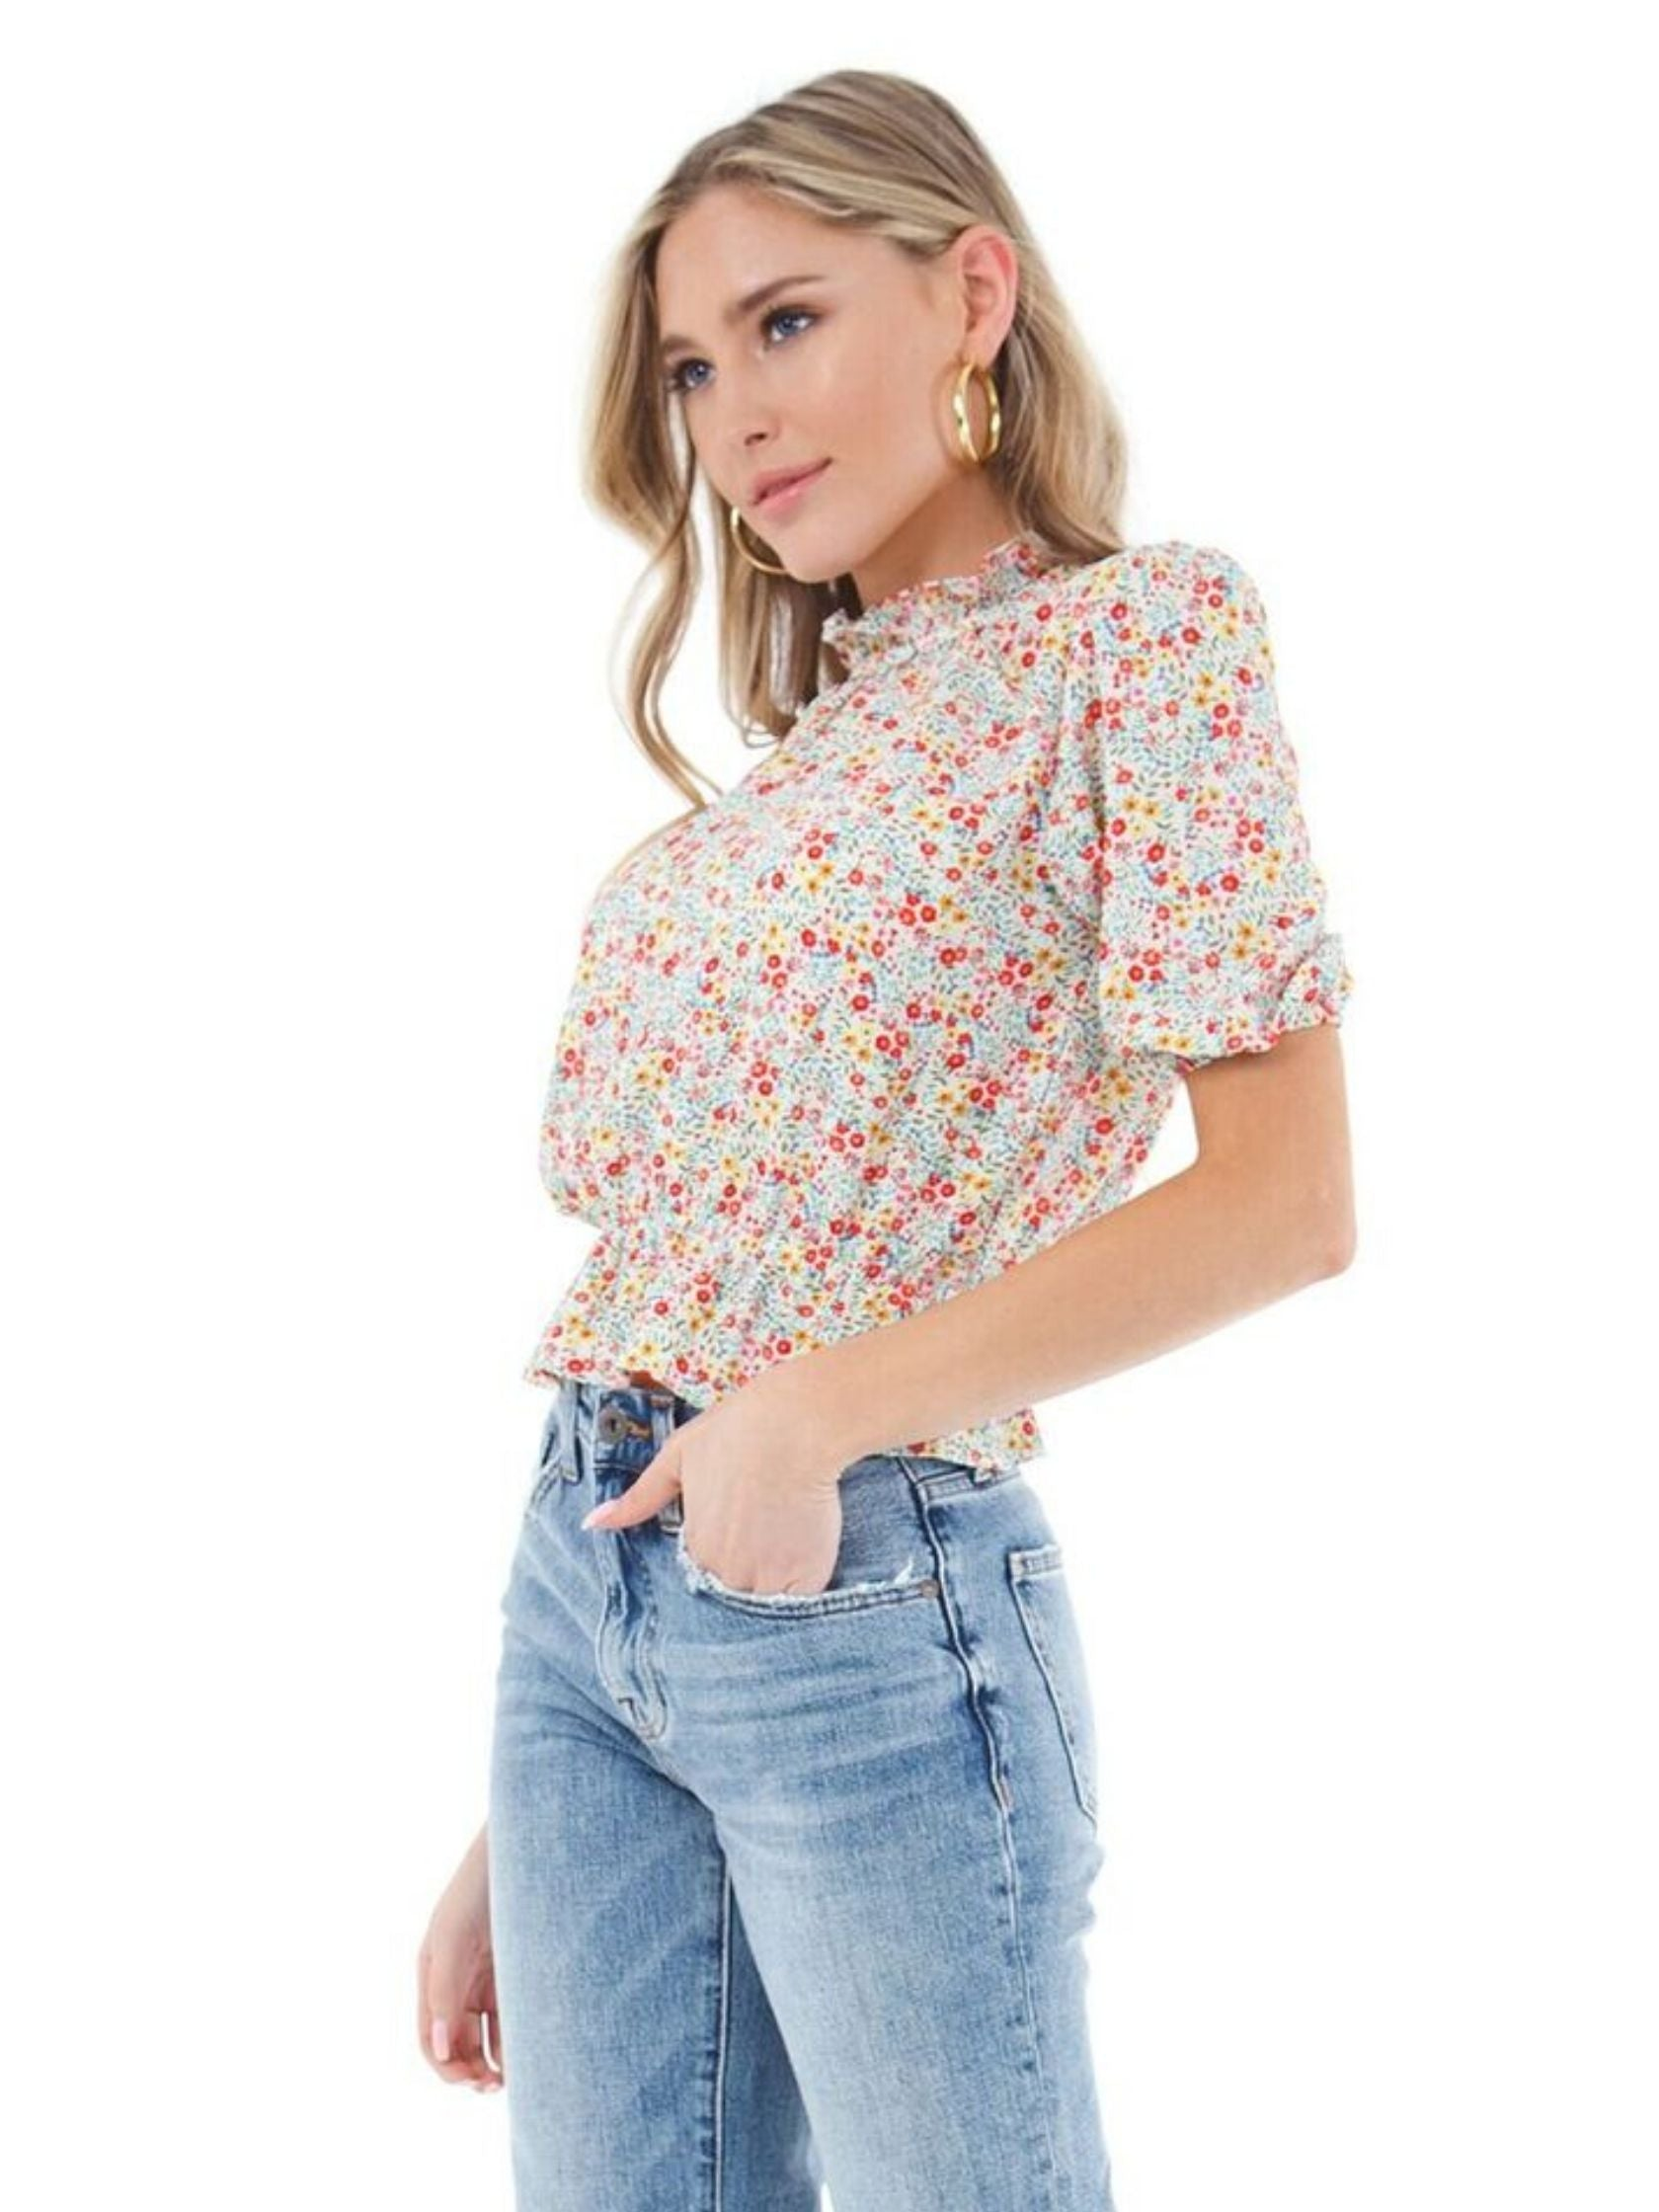 Women wearing a top rental from BB Dakota called Tea Party Floral Crepe